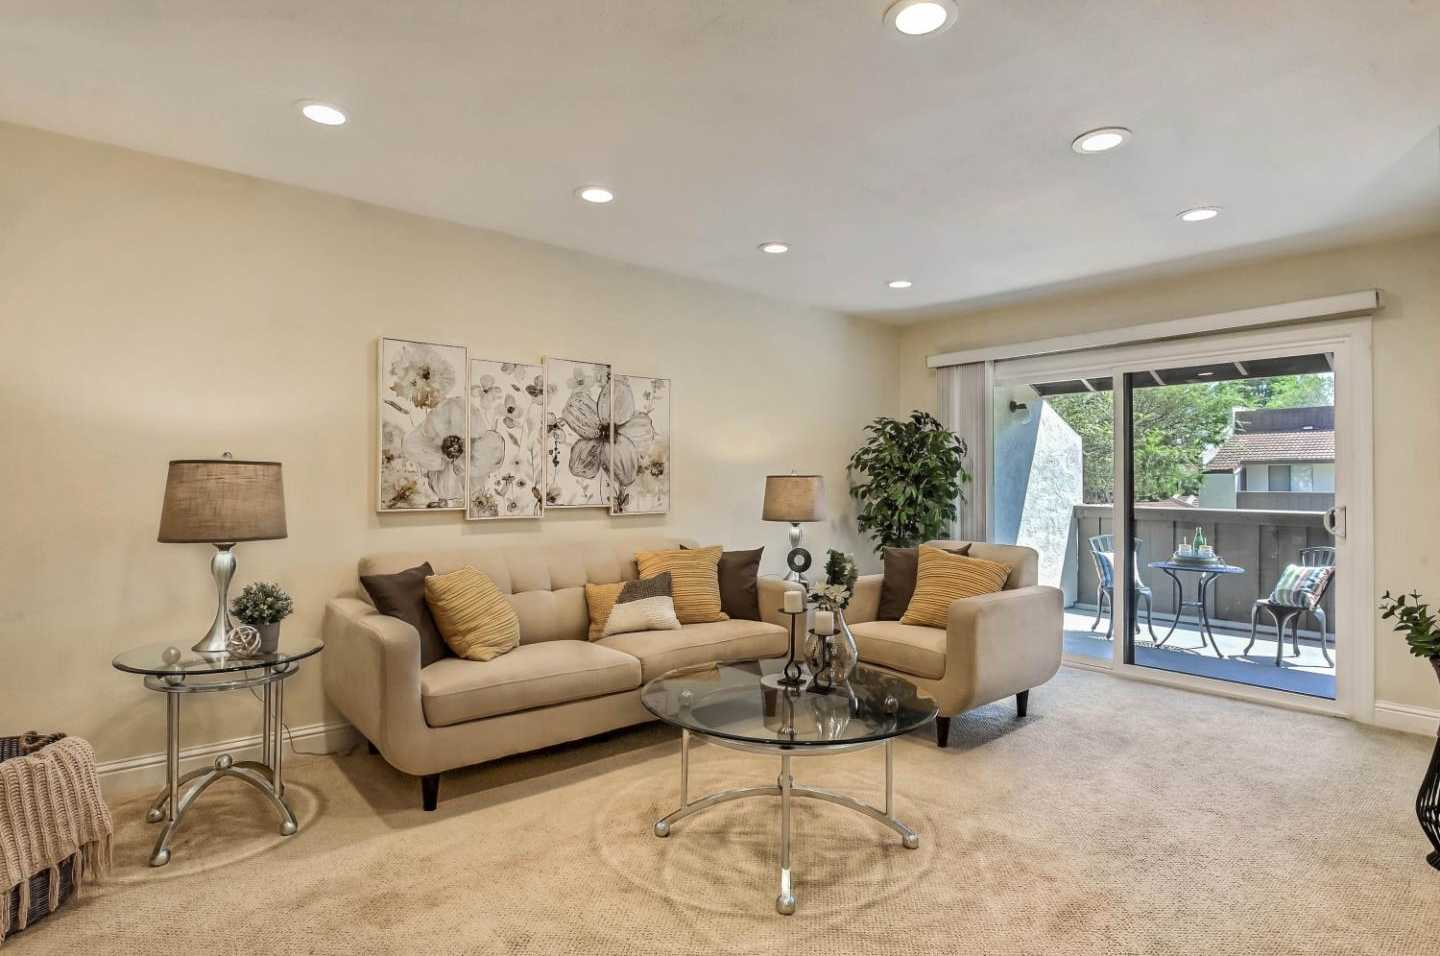 $668,000 - 1Br/1Ba -  for Sale in Sunnyvale